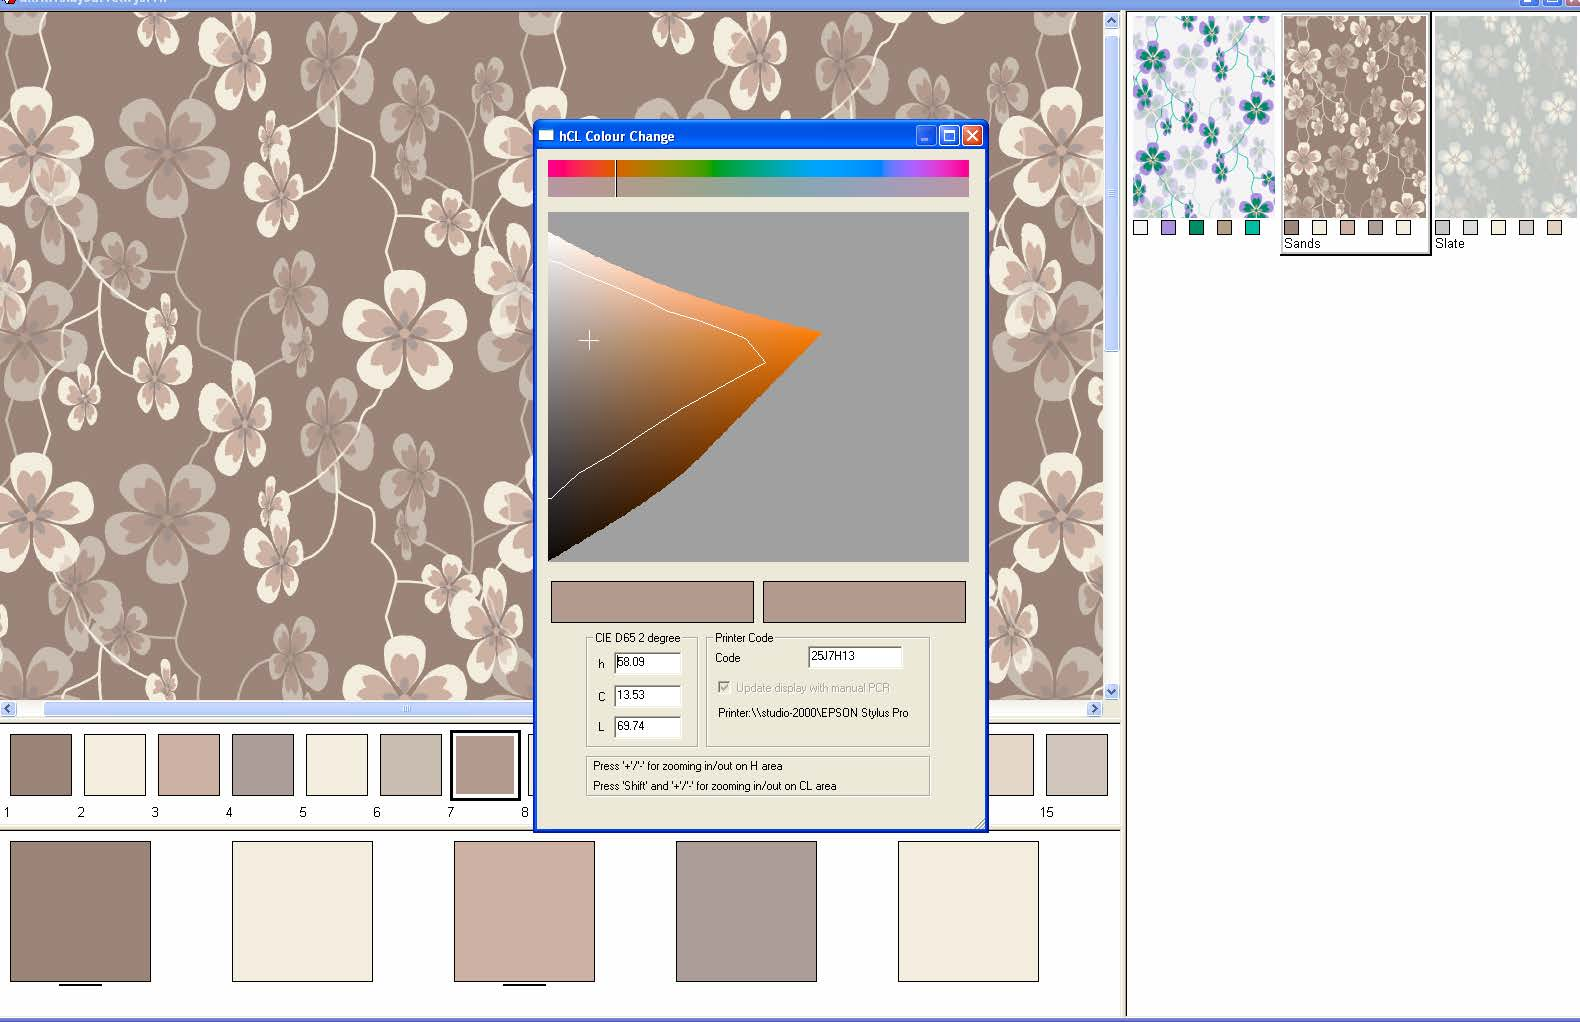 screen shot showing an example of a fully calibrated real-time color gamut indication